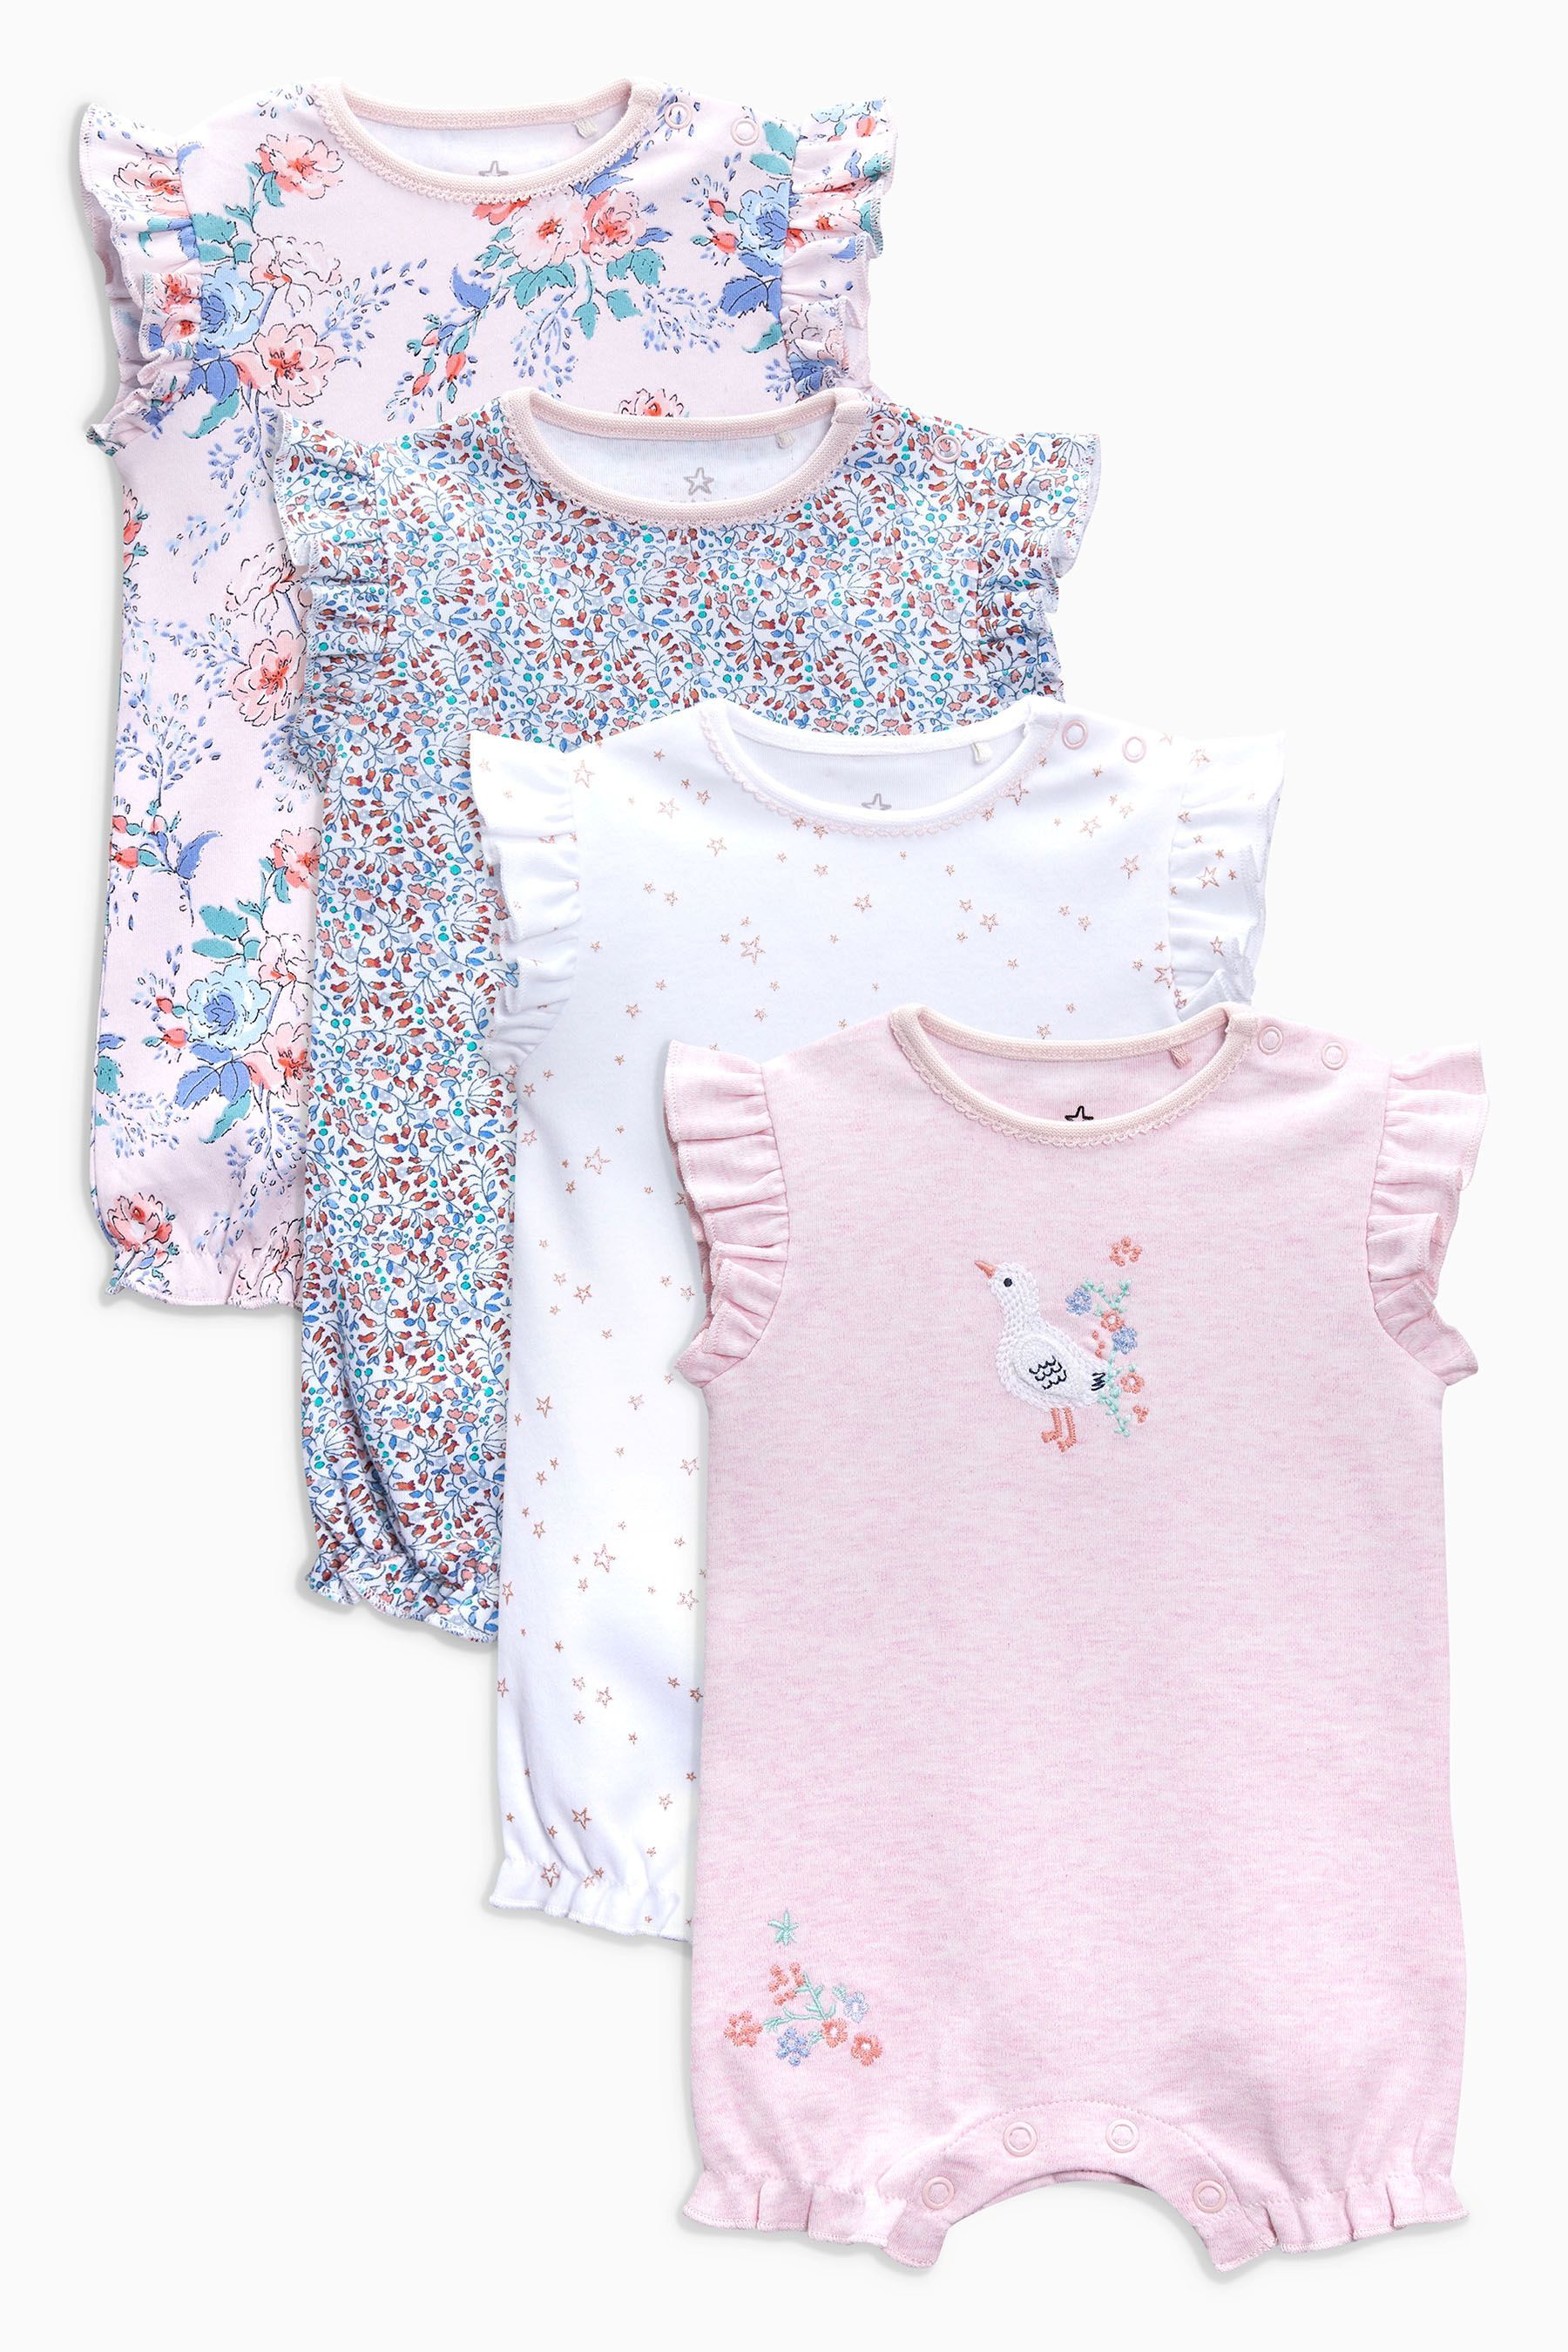 0d232d7b7bf7 Girls Next Pink White Floral Short Leg Rompers Four Pack (0mths-2yrs) - Pink